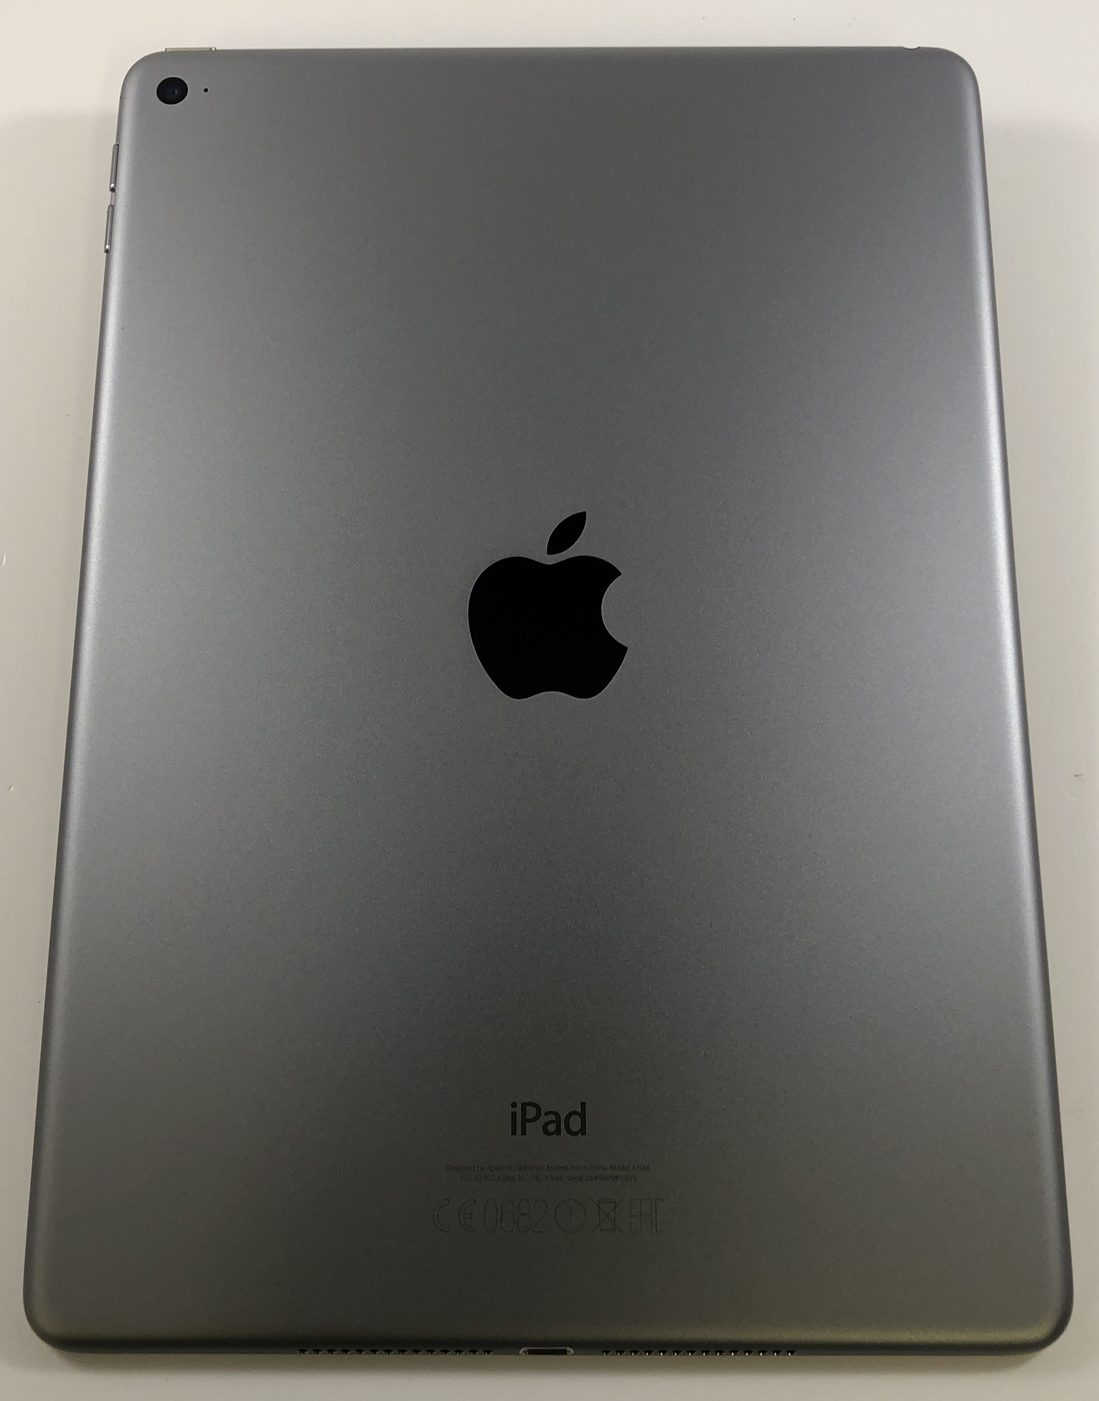 iPad Air 2 Wi-Fi 16GB, 16GB, Space Gray, imagen 2